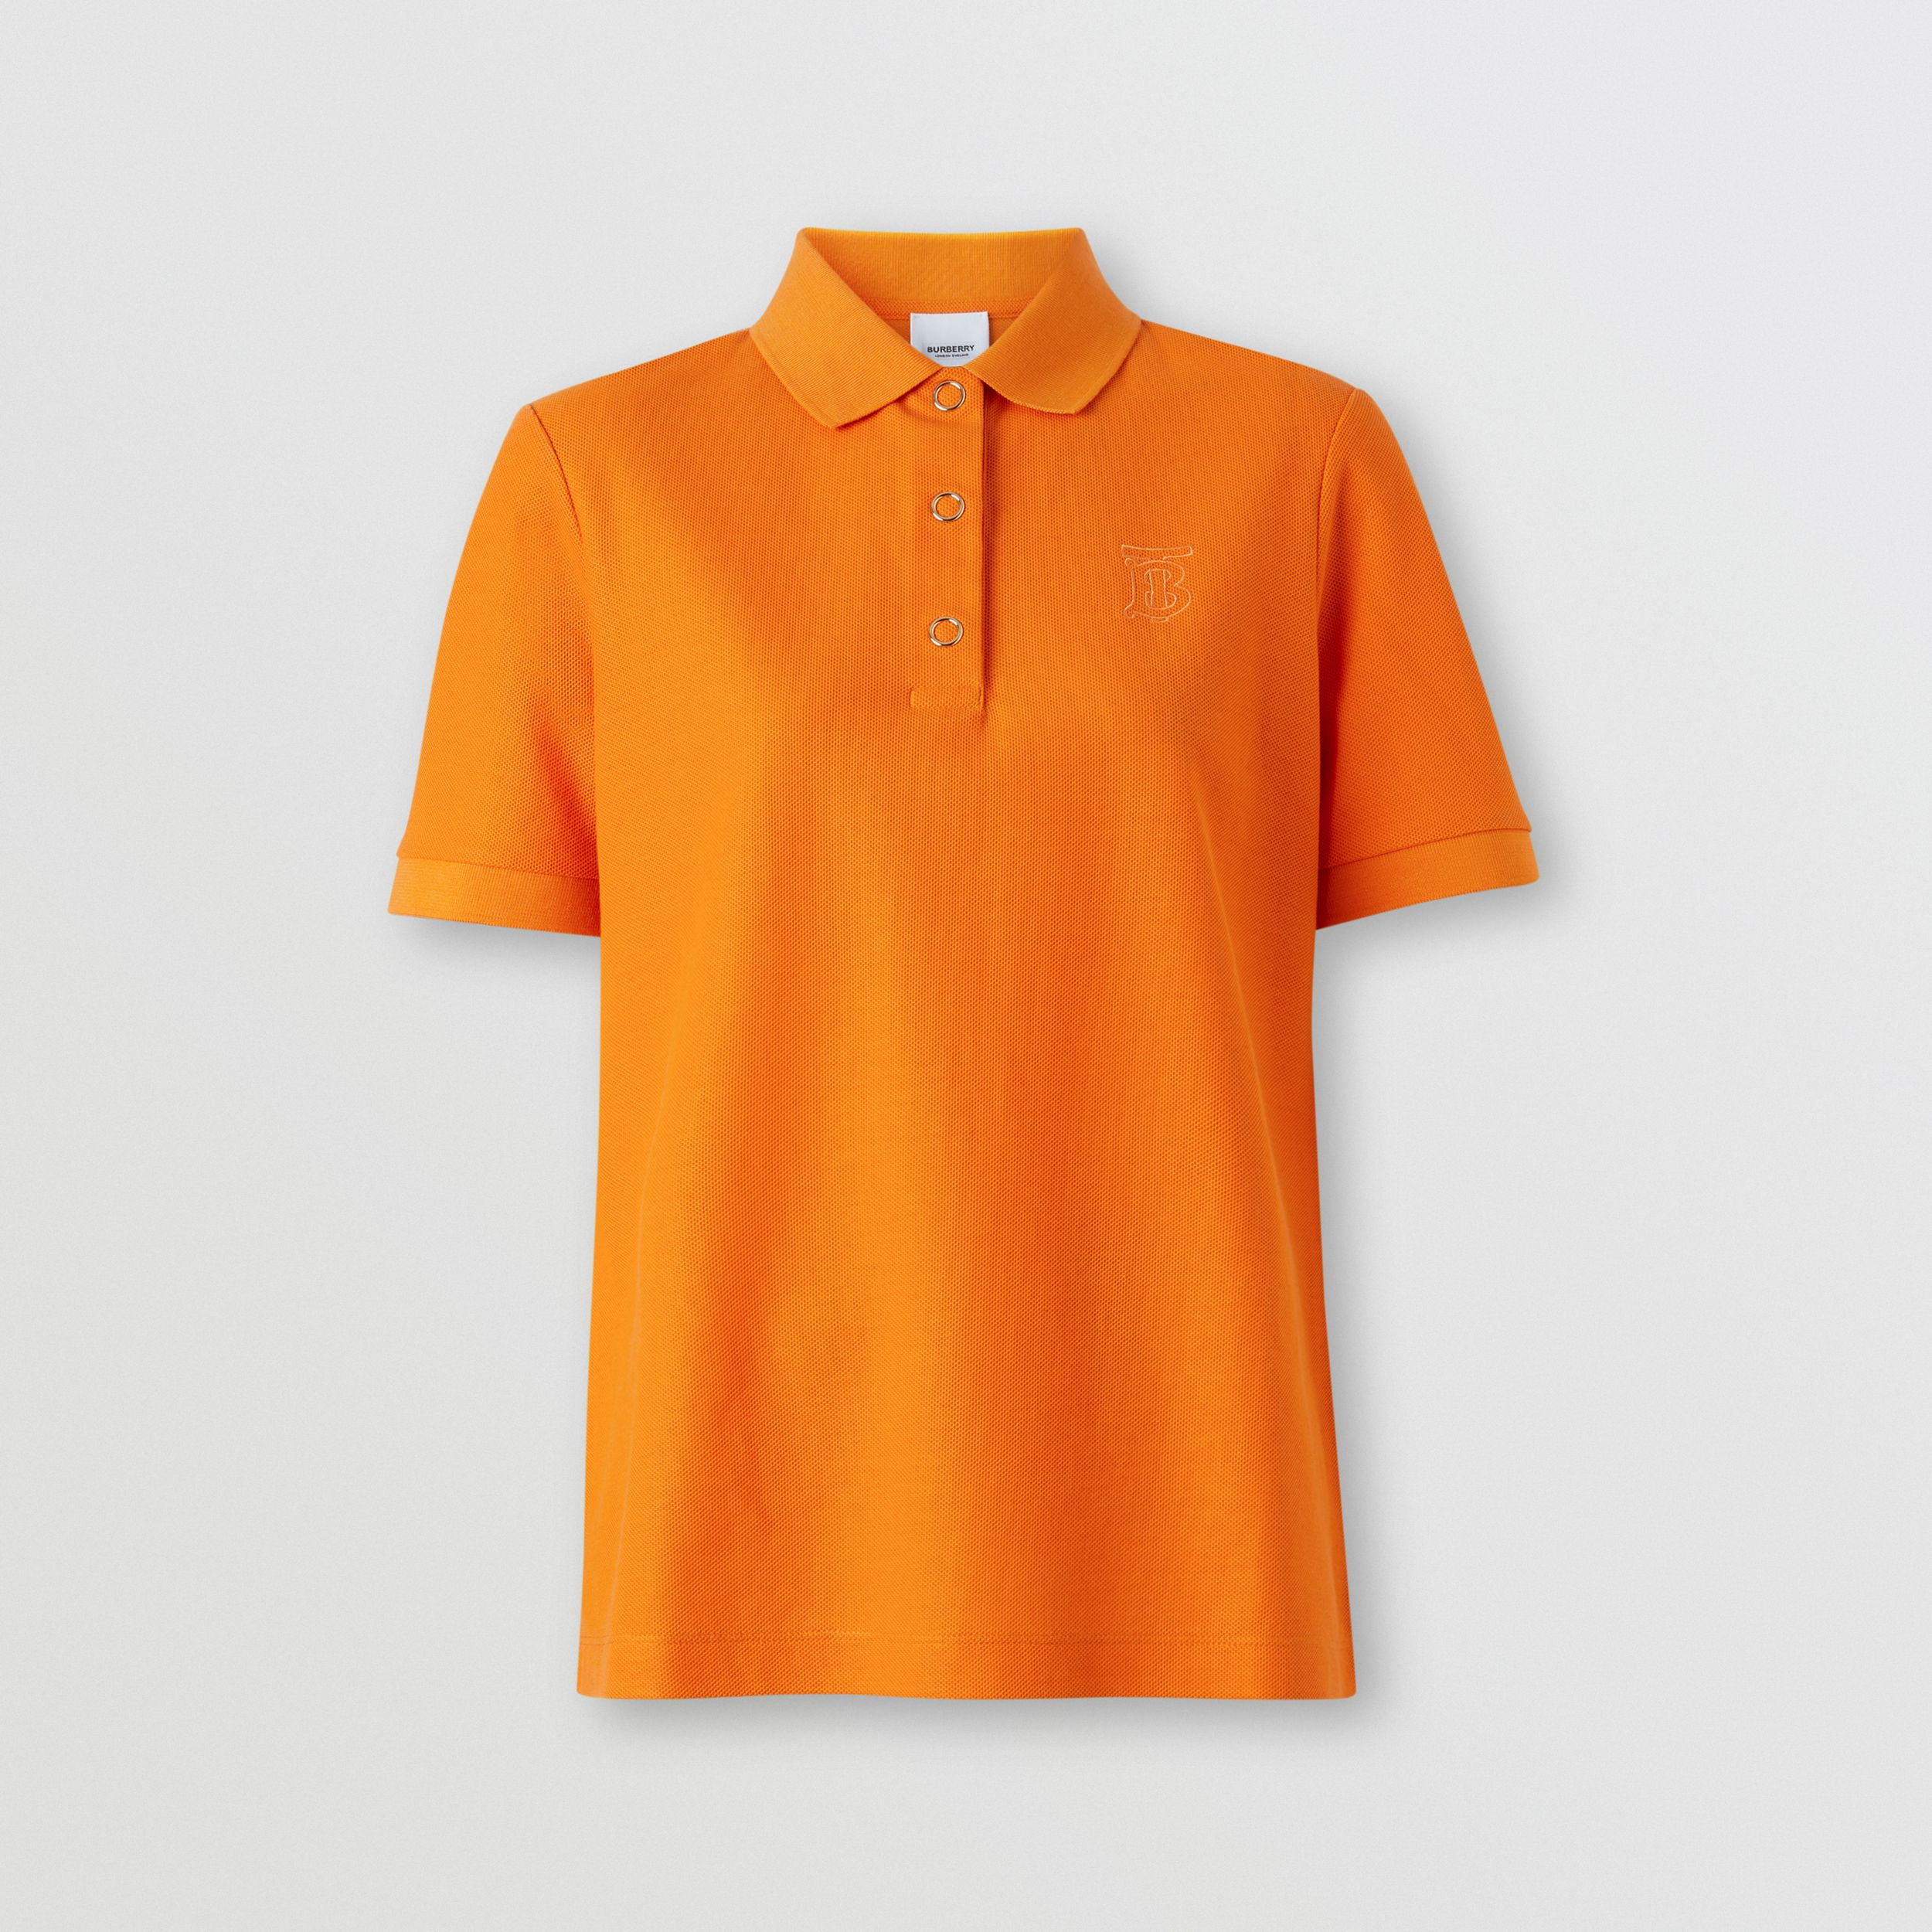 Monogram Motif Cotton Piqué Polo Shirt in Bright Orange - Women | Burberry - 4